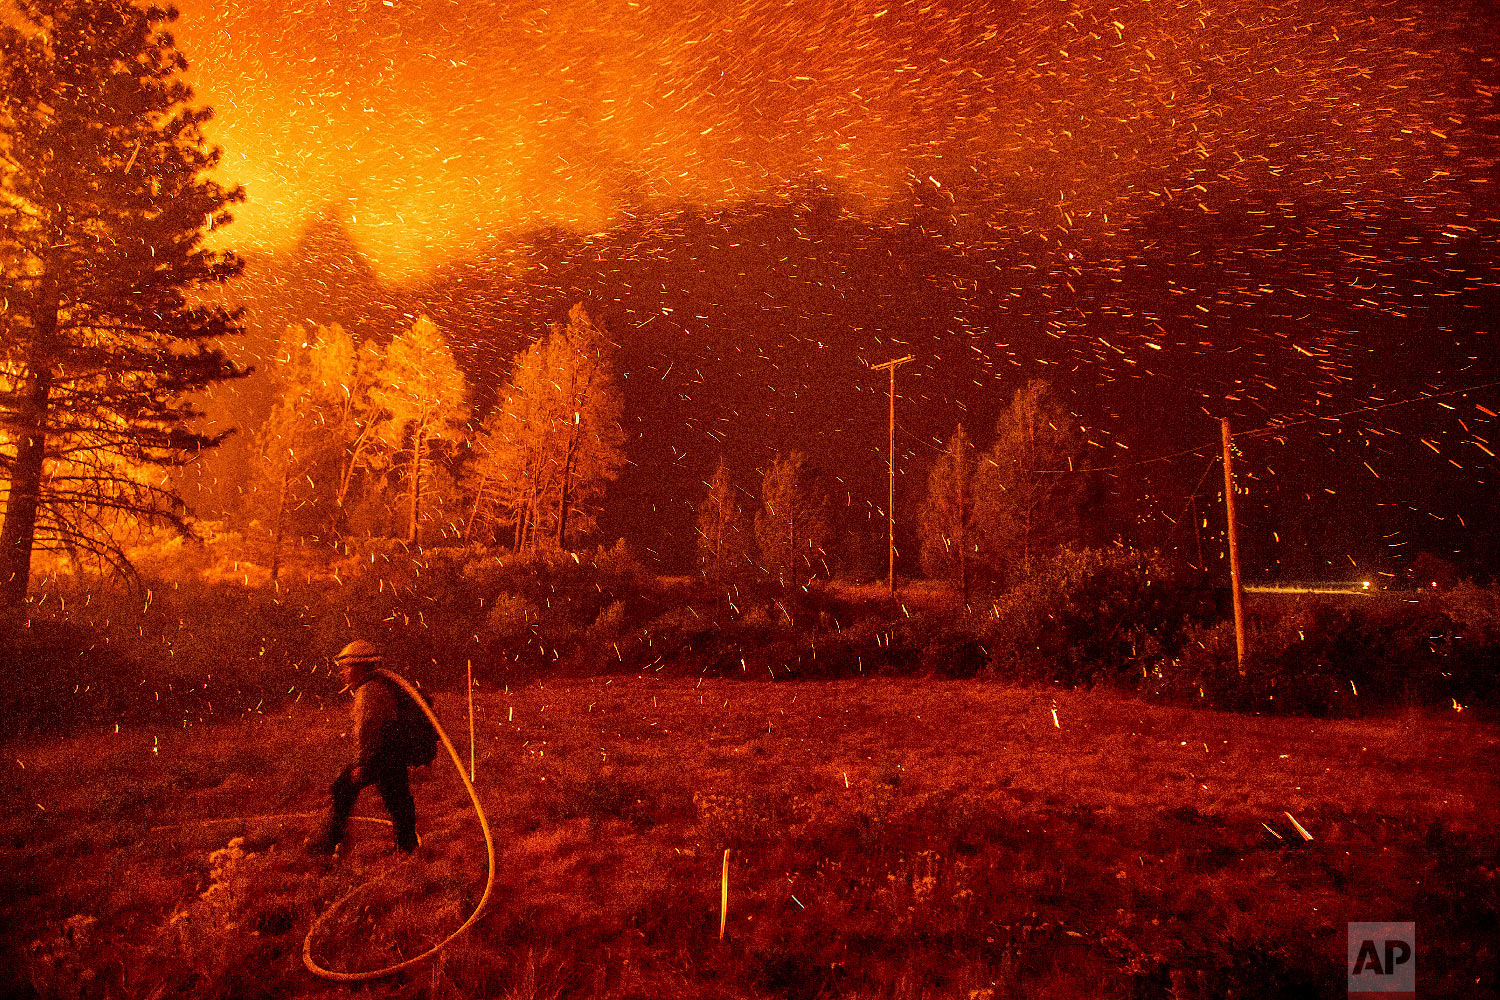 Embers fly above a firefighter hustling to control a backfire as the Delta Fire burns in the California's Shasta-Trinity National Forest on Sept. 6, 2018. (AP Photo/Noah Berger)